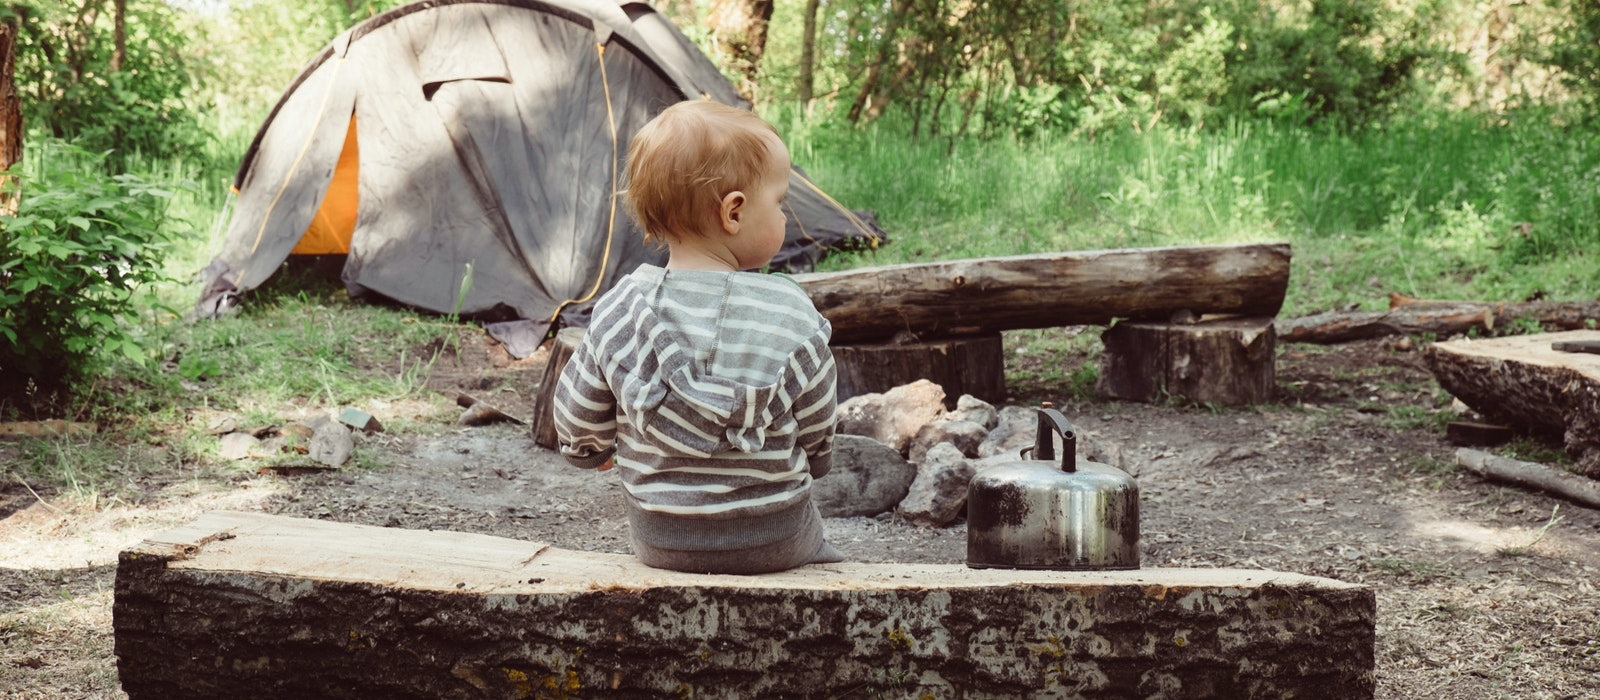 For young children, a camping trip marks the commencement of an era, the beginning of a glorious childhood spent exploring the outdoors.